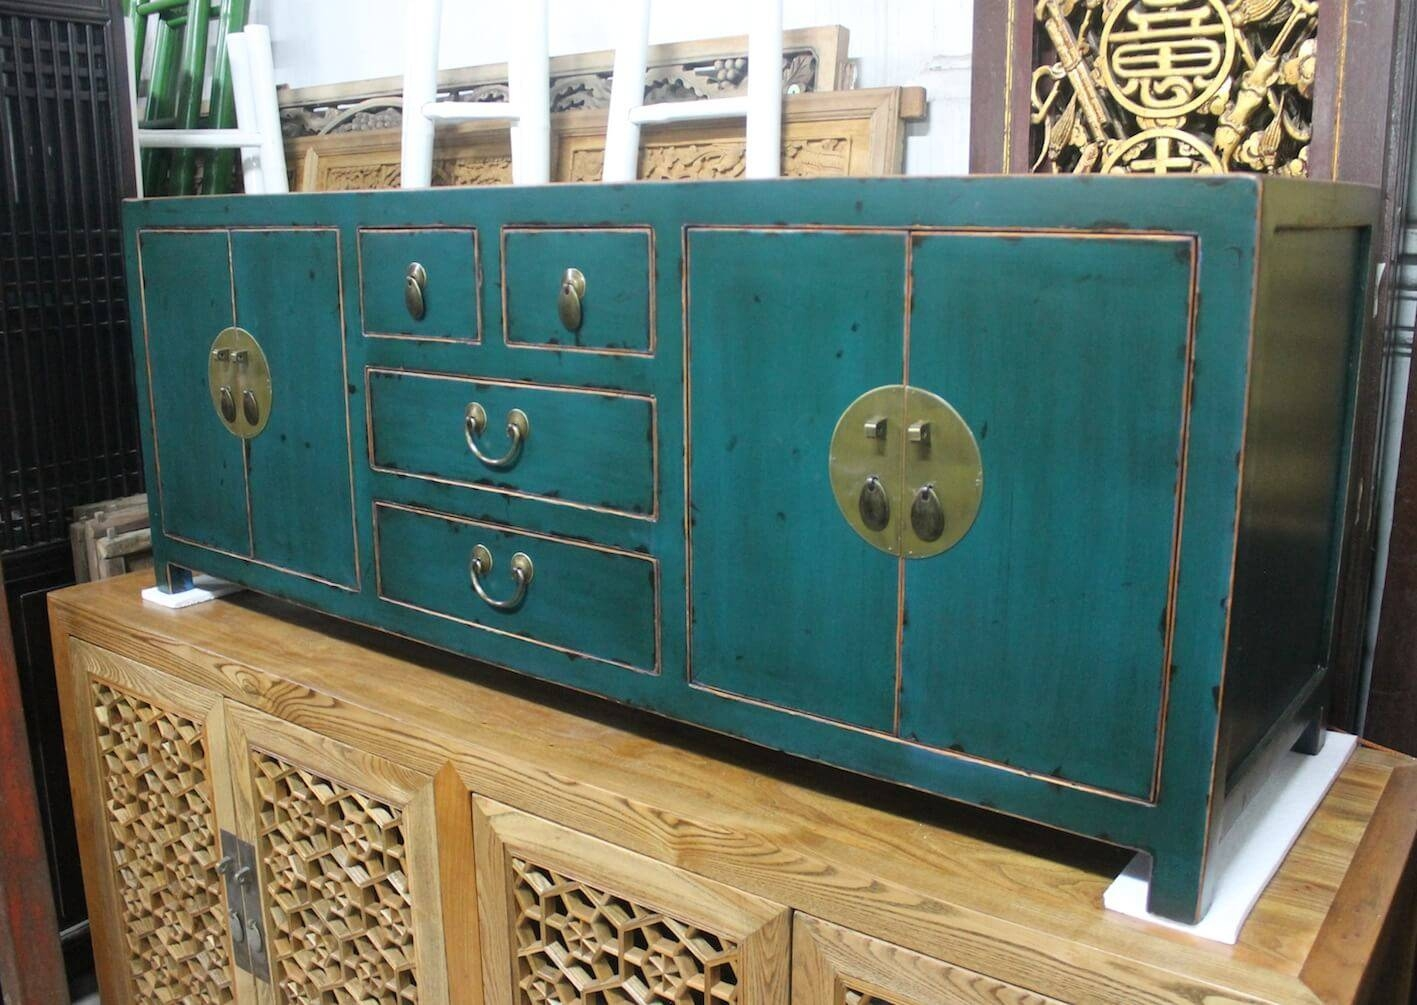 Sideboards | Just Anthony Pertaining To Most Up To Date Green Sideboards (#14 of 15)